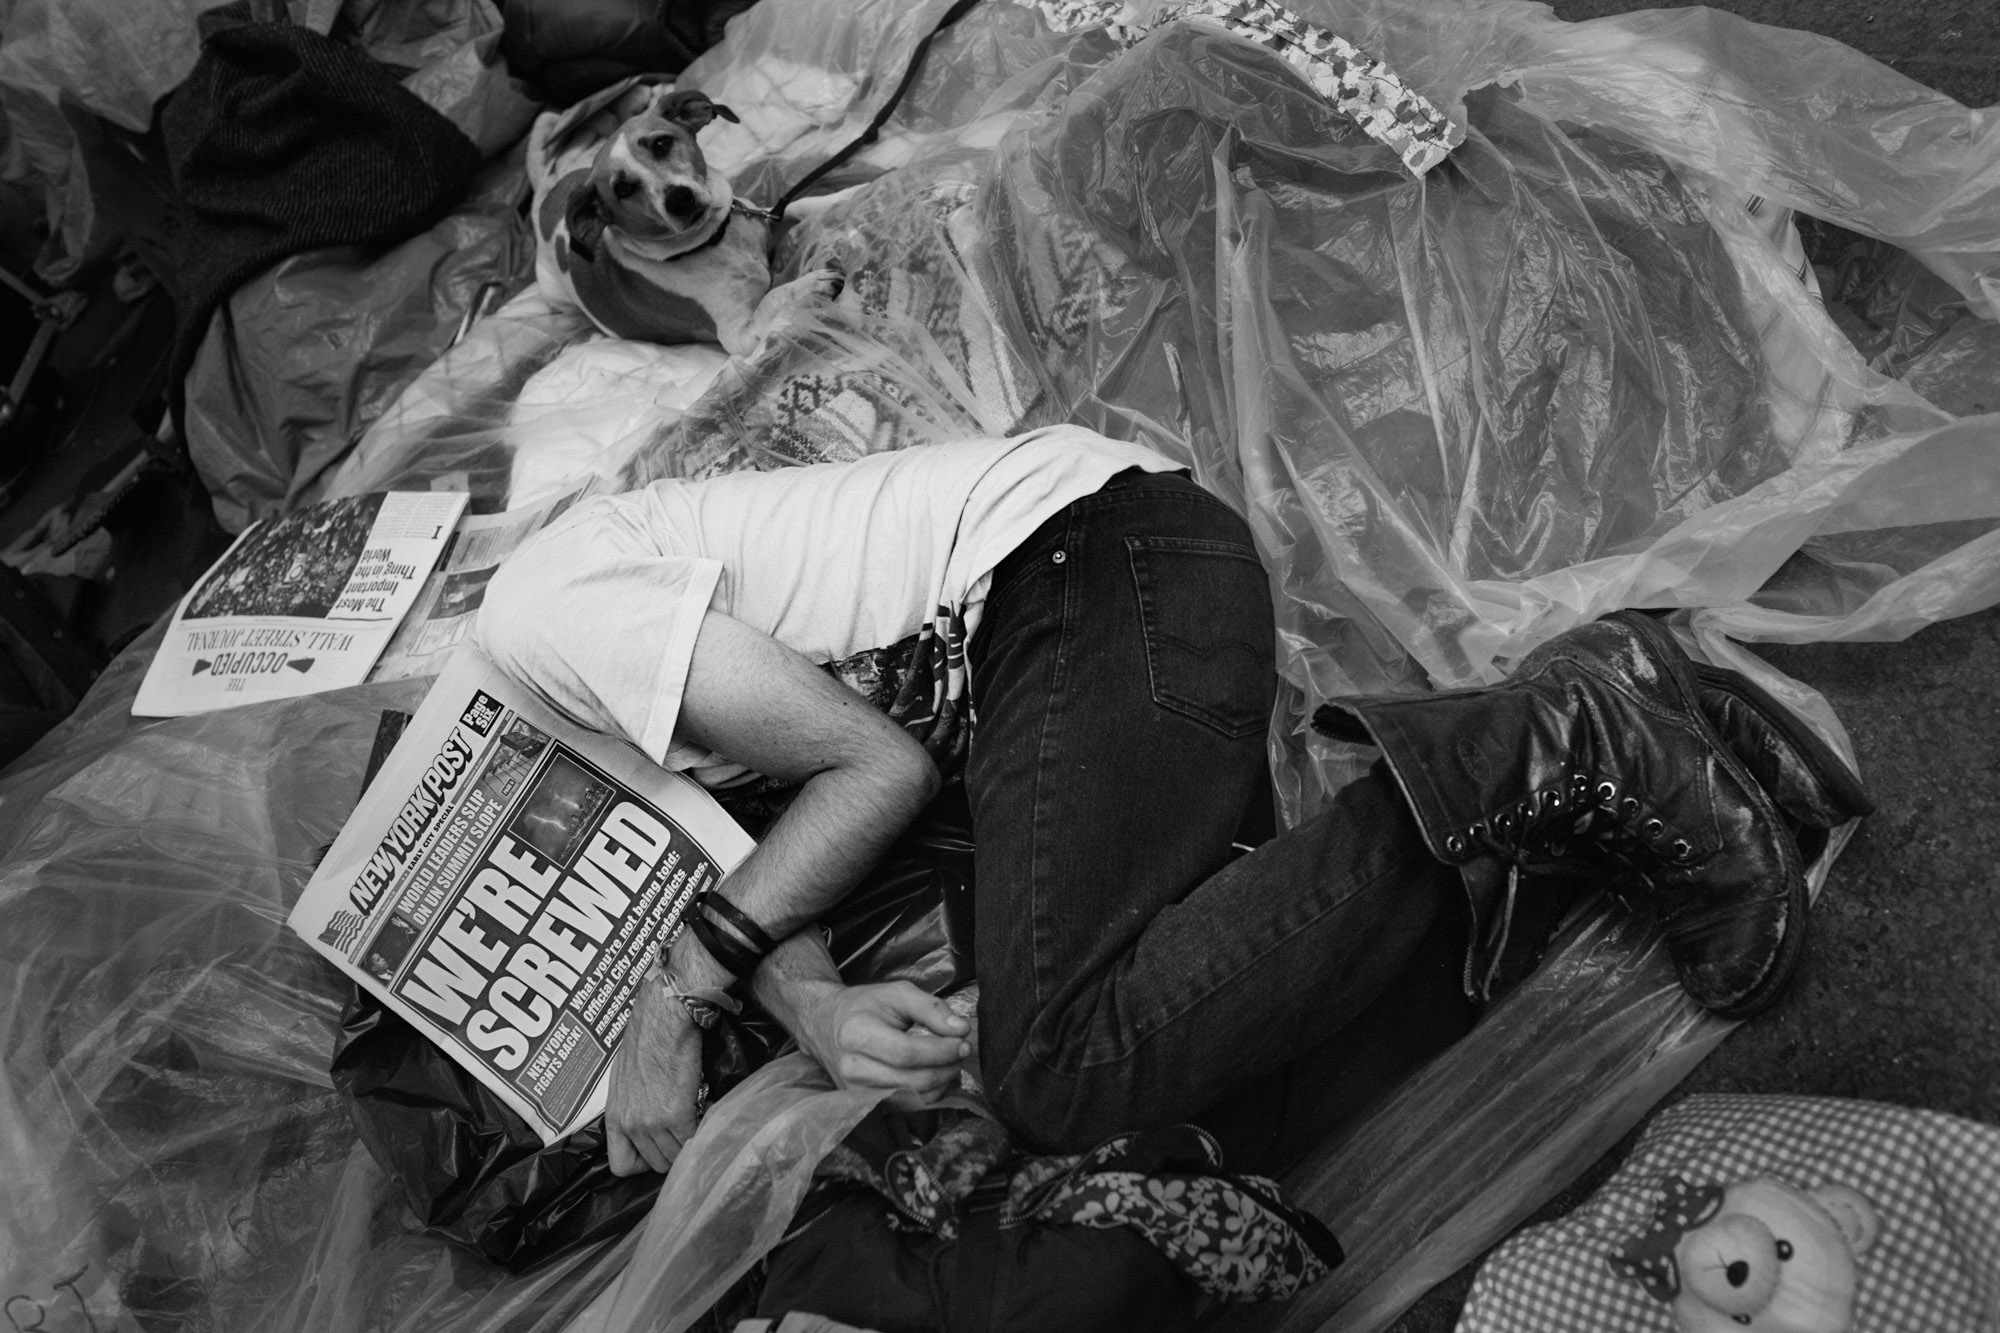 An OWS protestor sleeps with a newspaper over his face.